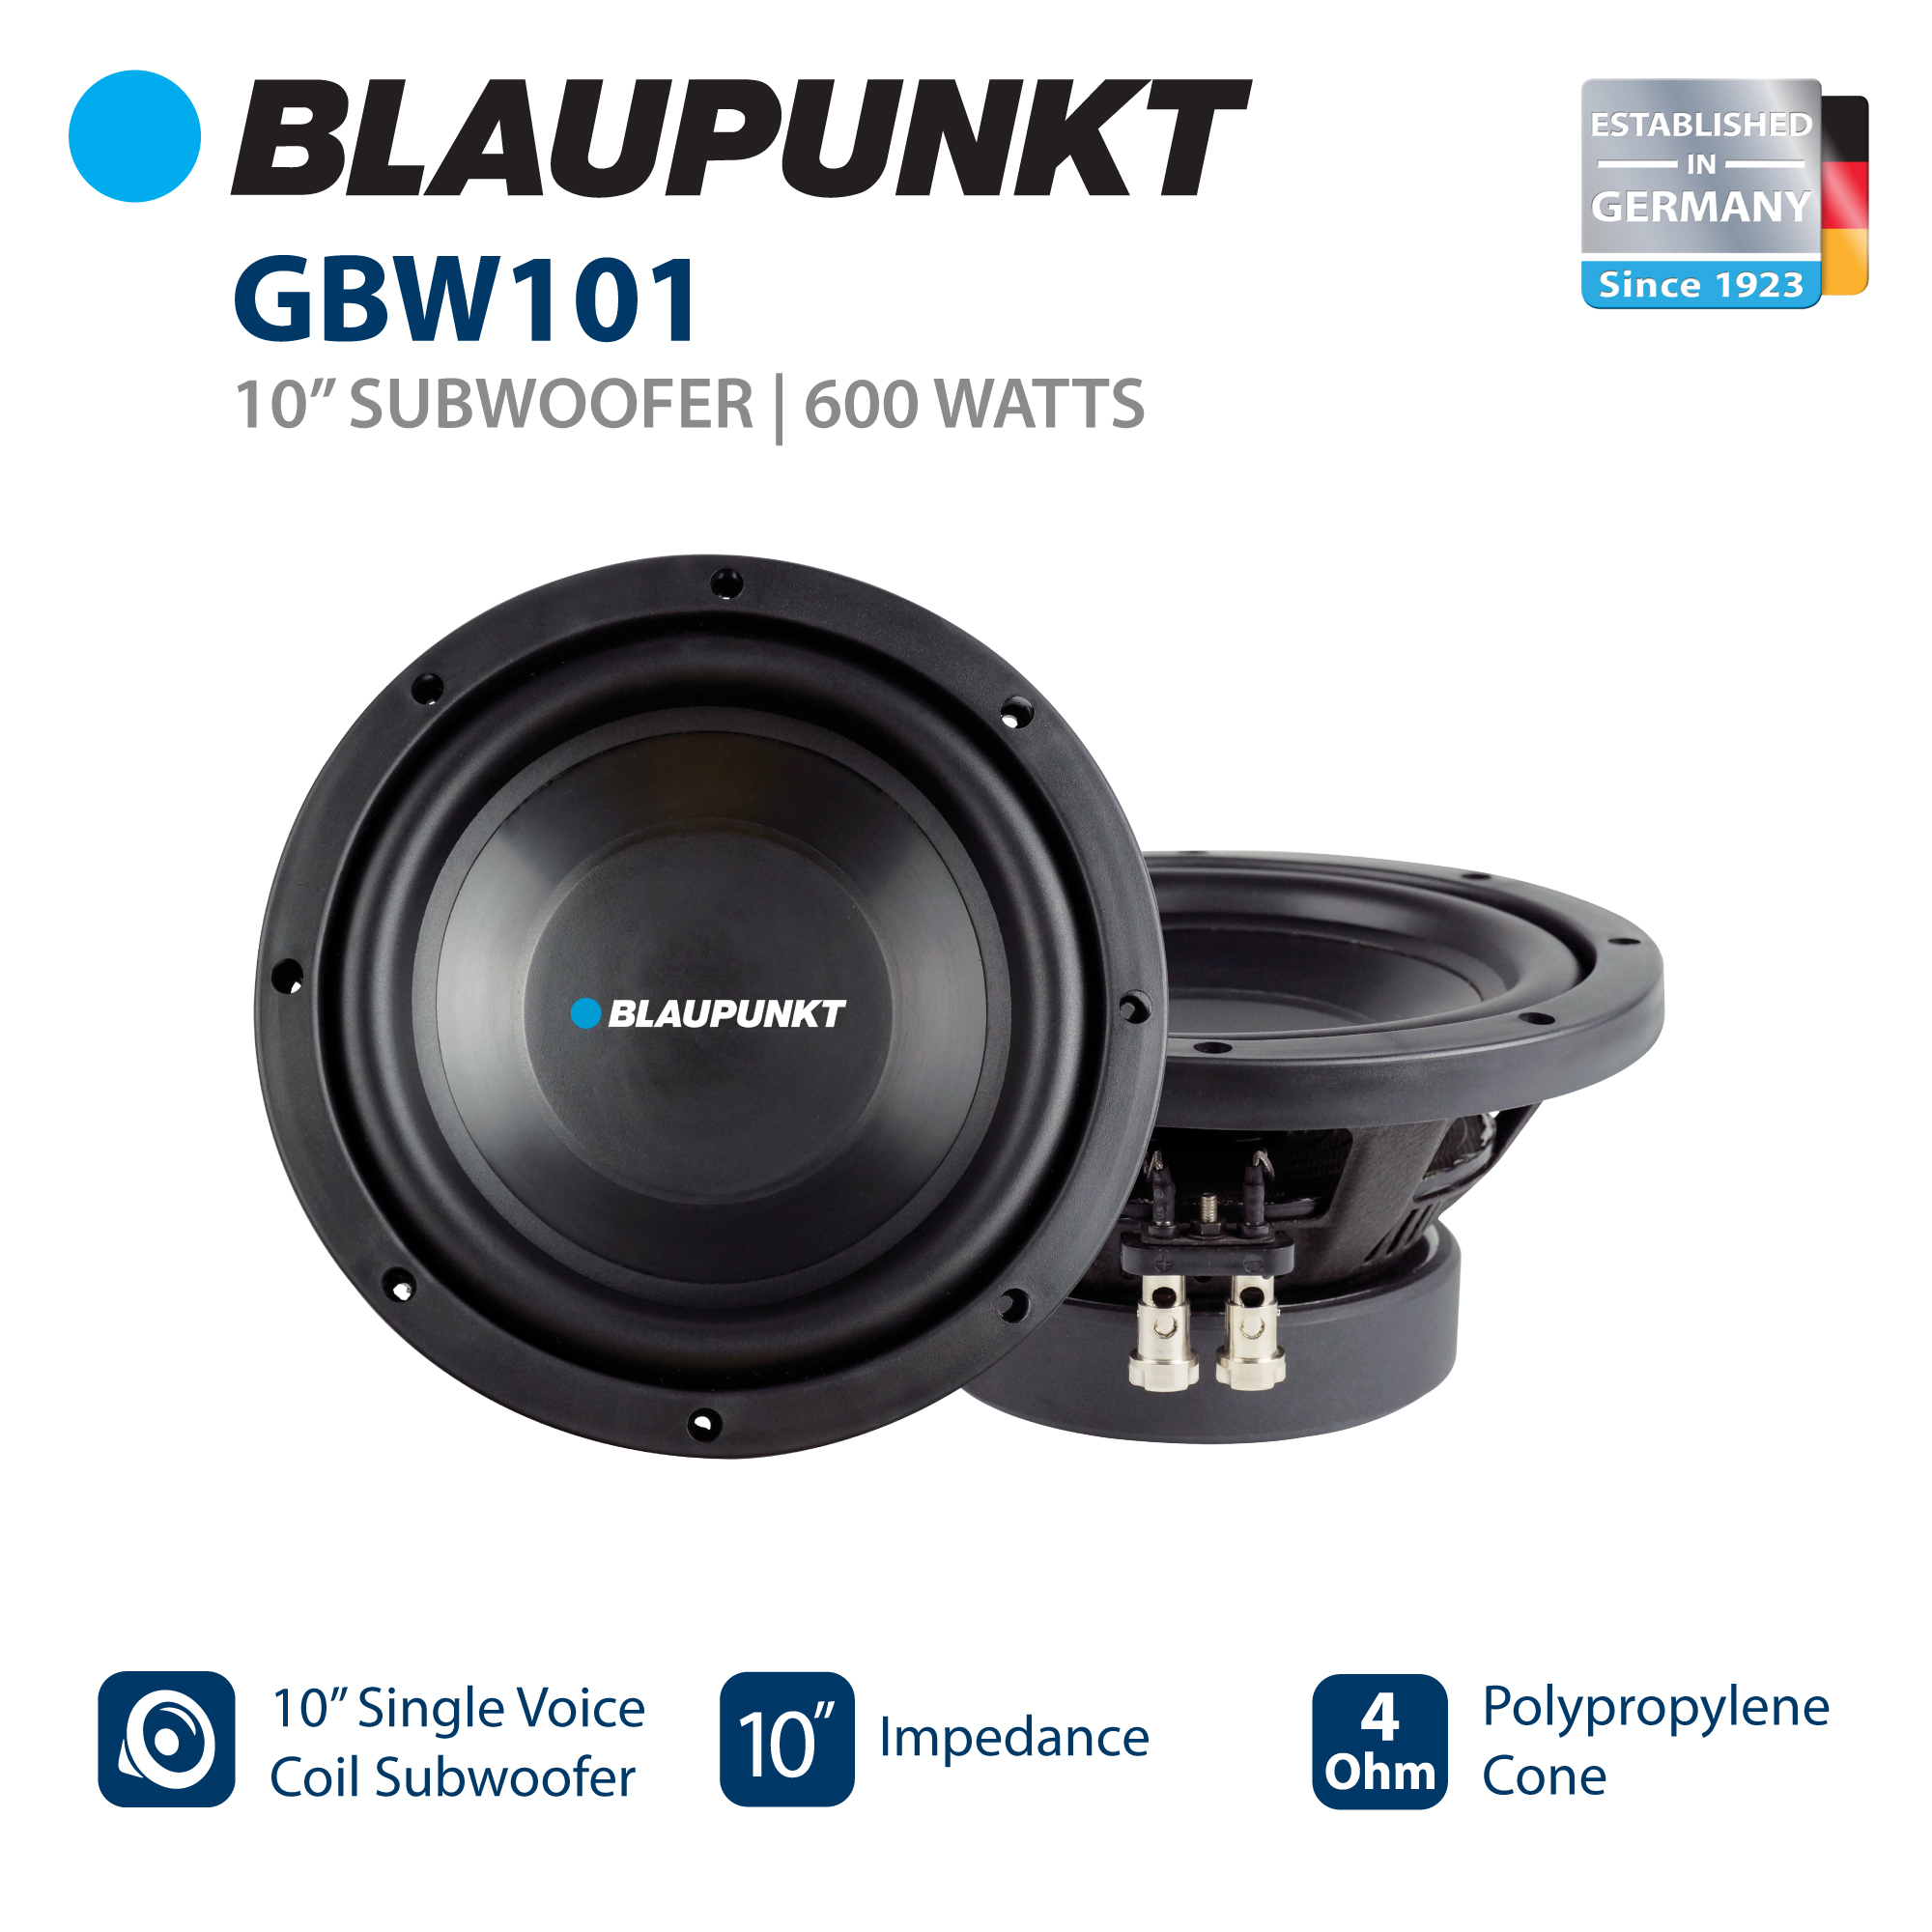 "Blaupunkt 10"" Single Voice Coil Subwoofer with 600W Power (GBW101)"